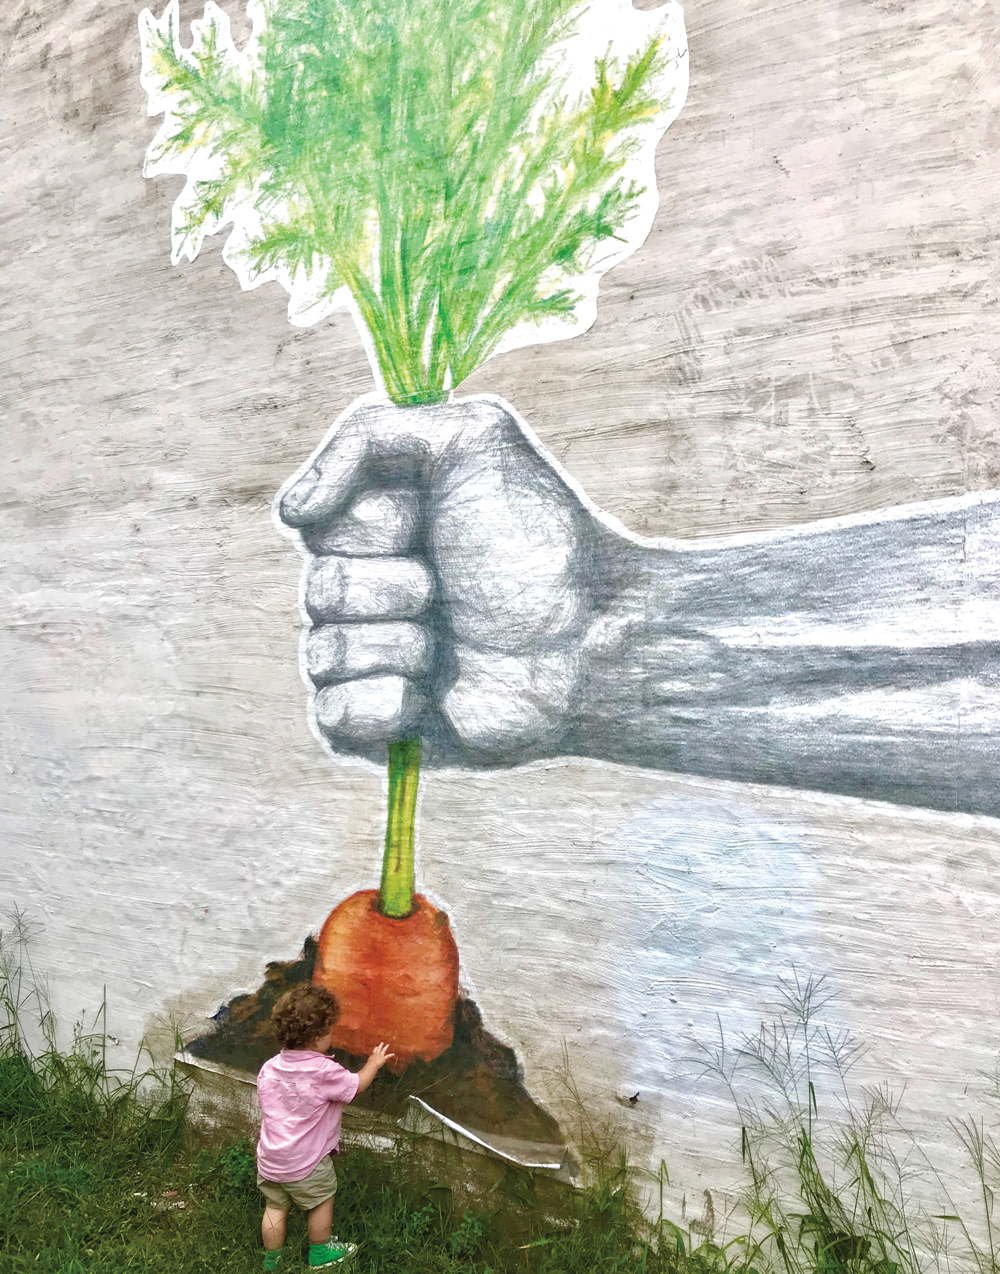 Wheatpaste Mural Project, Bangor, Maine